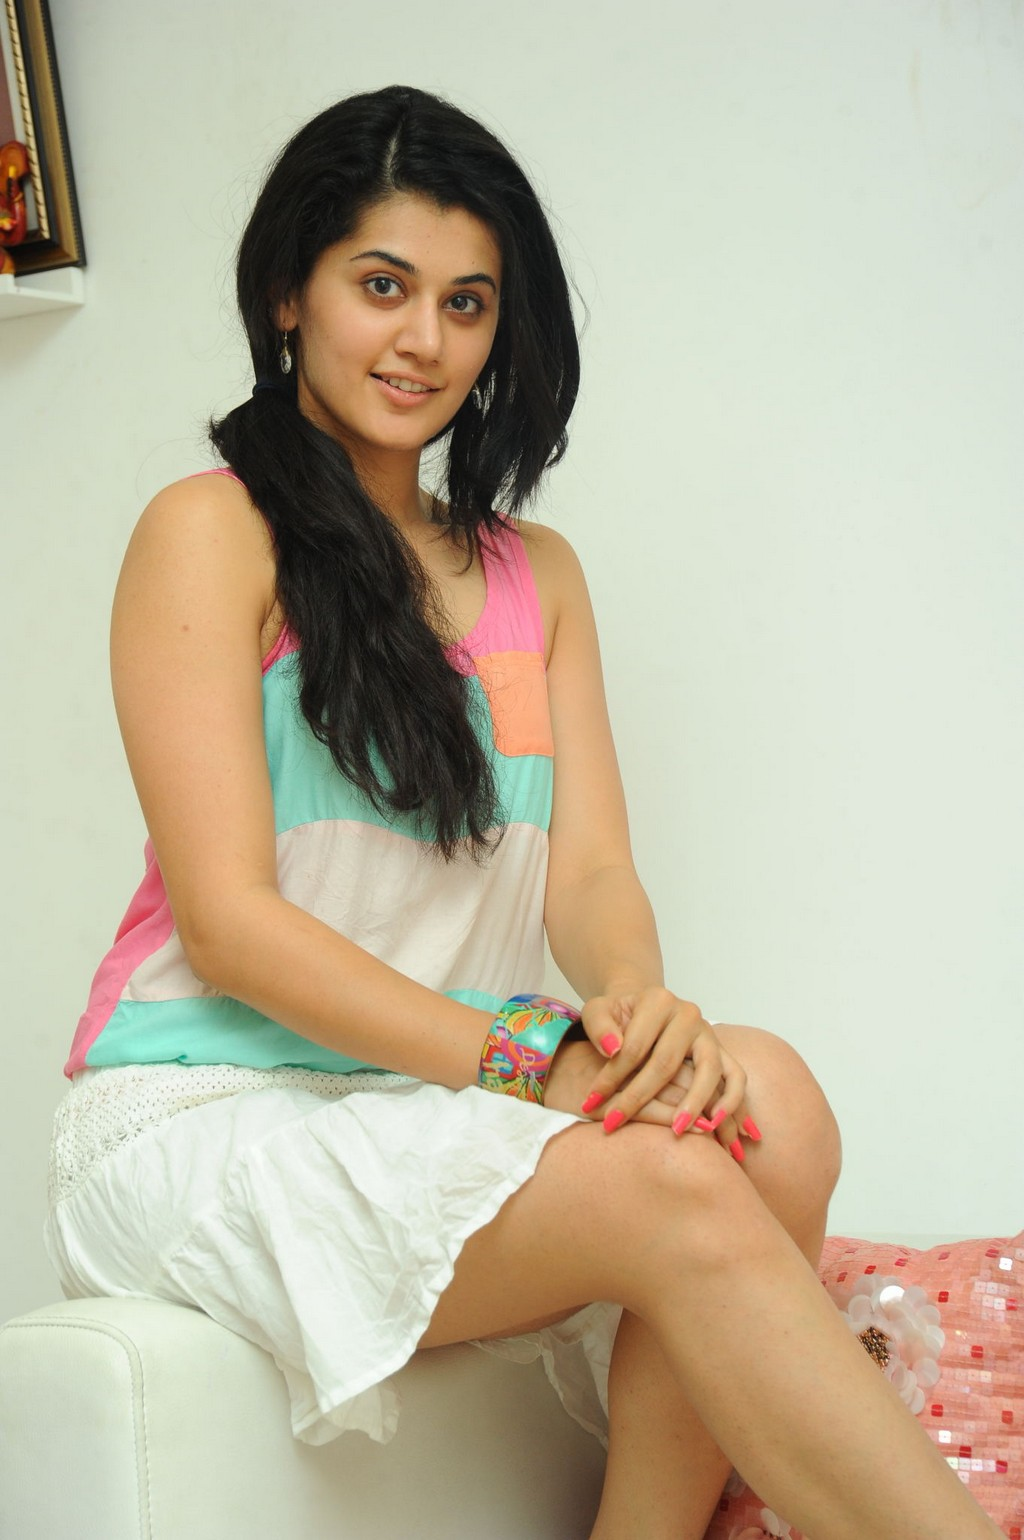 Spicy Taapsee Pannu Thighs Show Images In Short Tight Dress